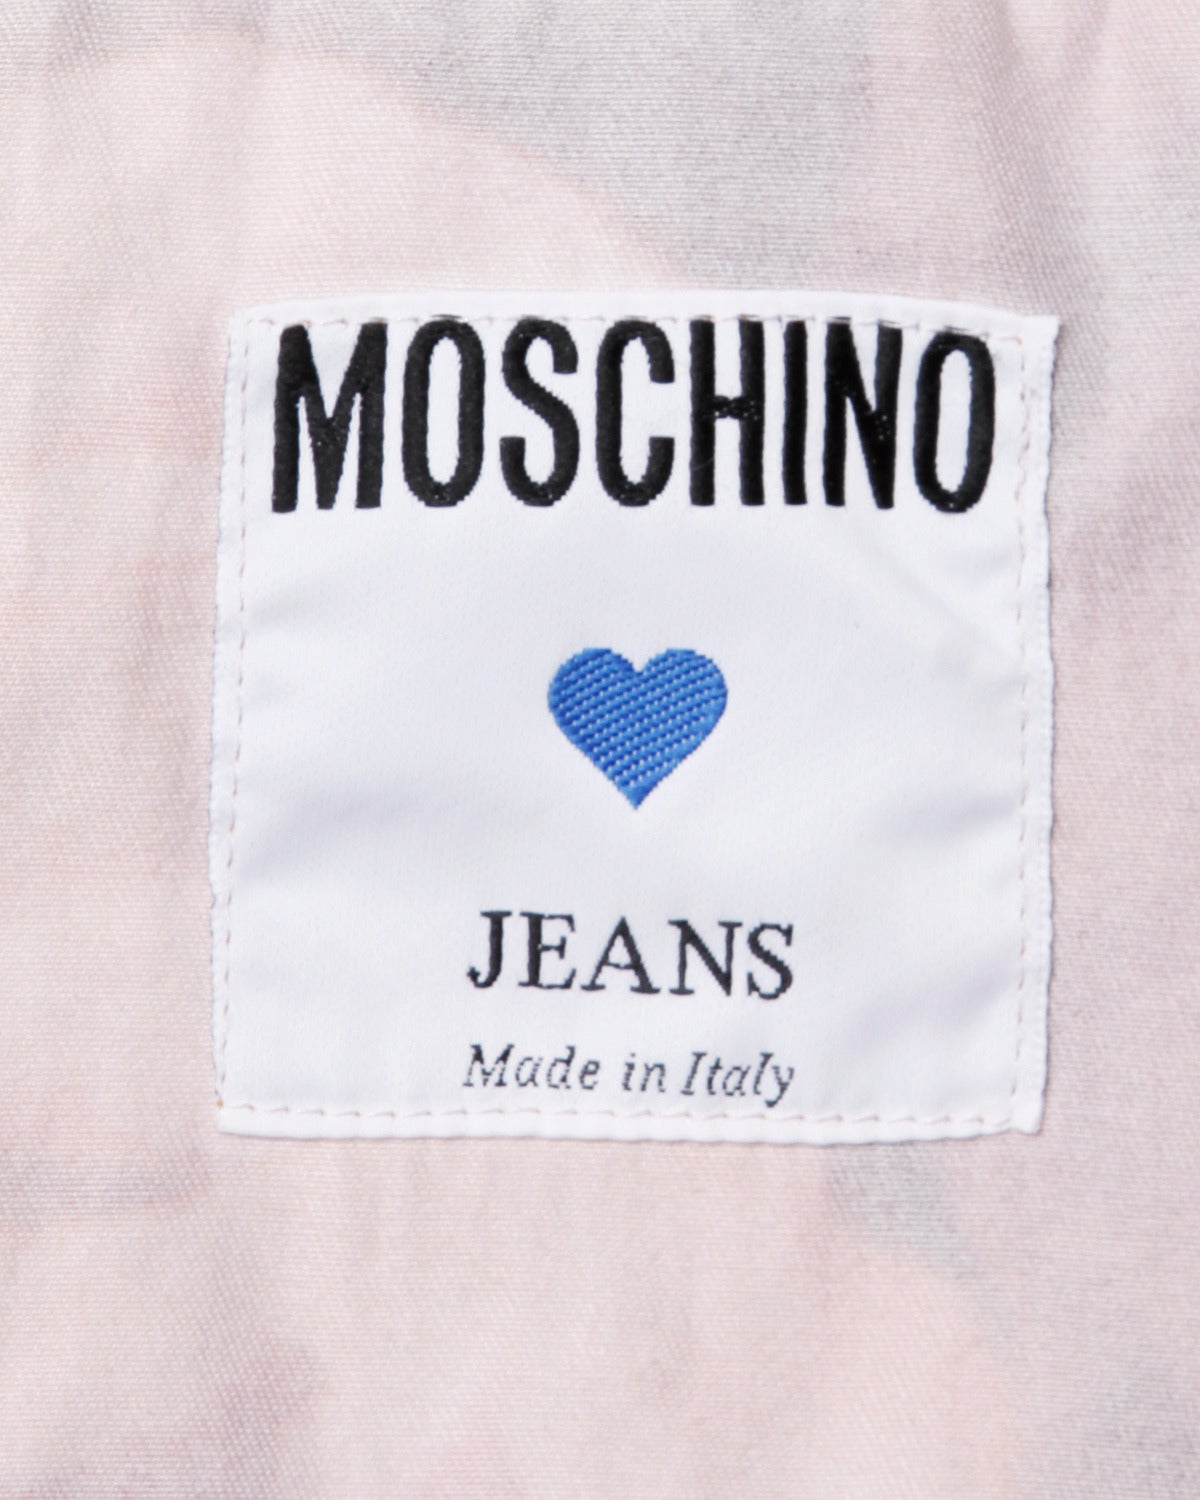 Moschino Jeans Vintage Floral Photo Print Denim Jacket, 1990s  For Sale 3